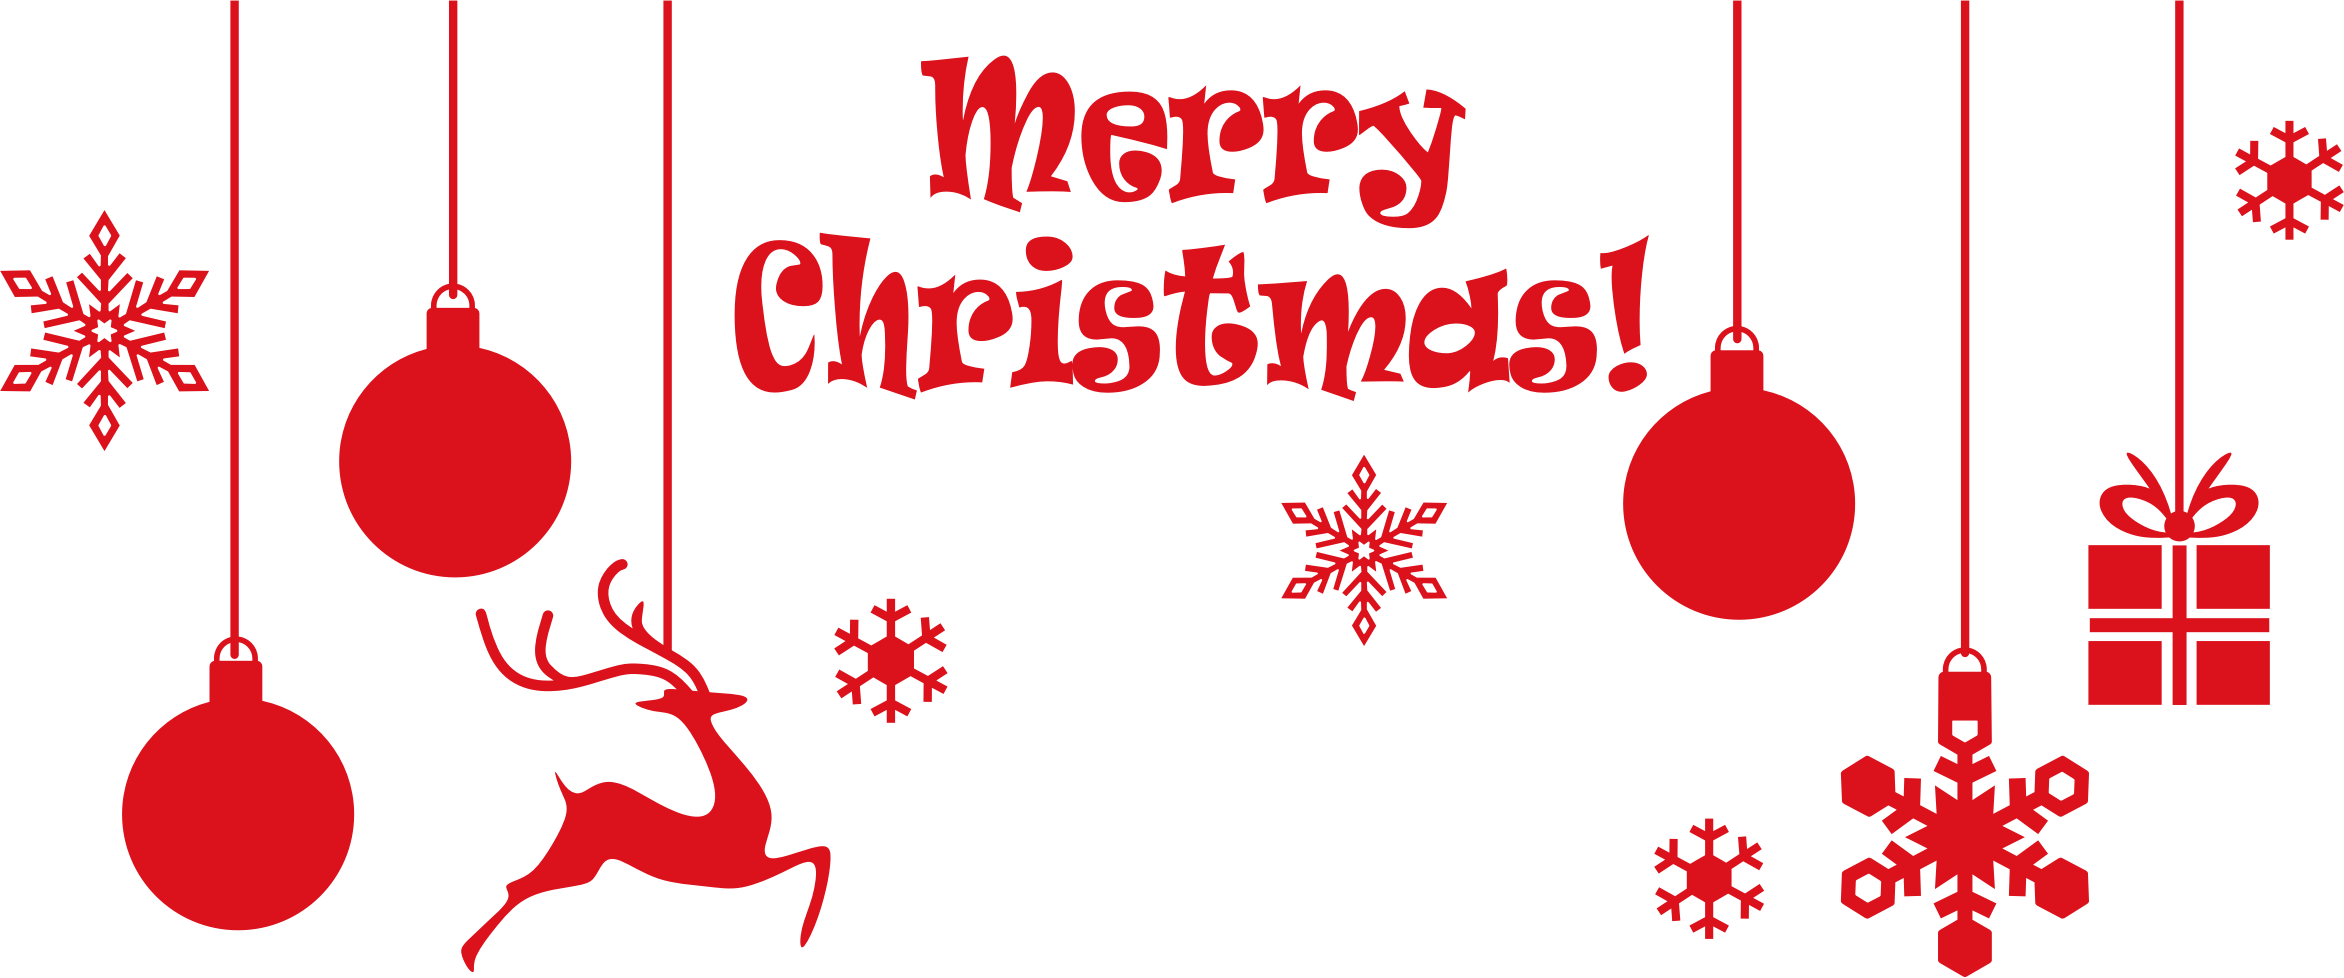 Merry christmas words clipart banner royalty free library Merry Christmas Ornamental Typography Icons PNG - Free PNG and Icons ... banner royalty free library